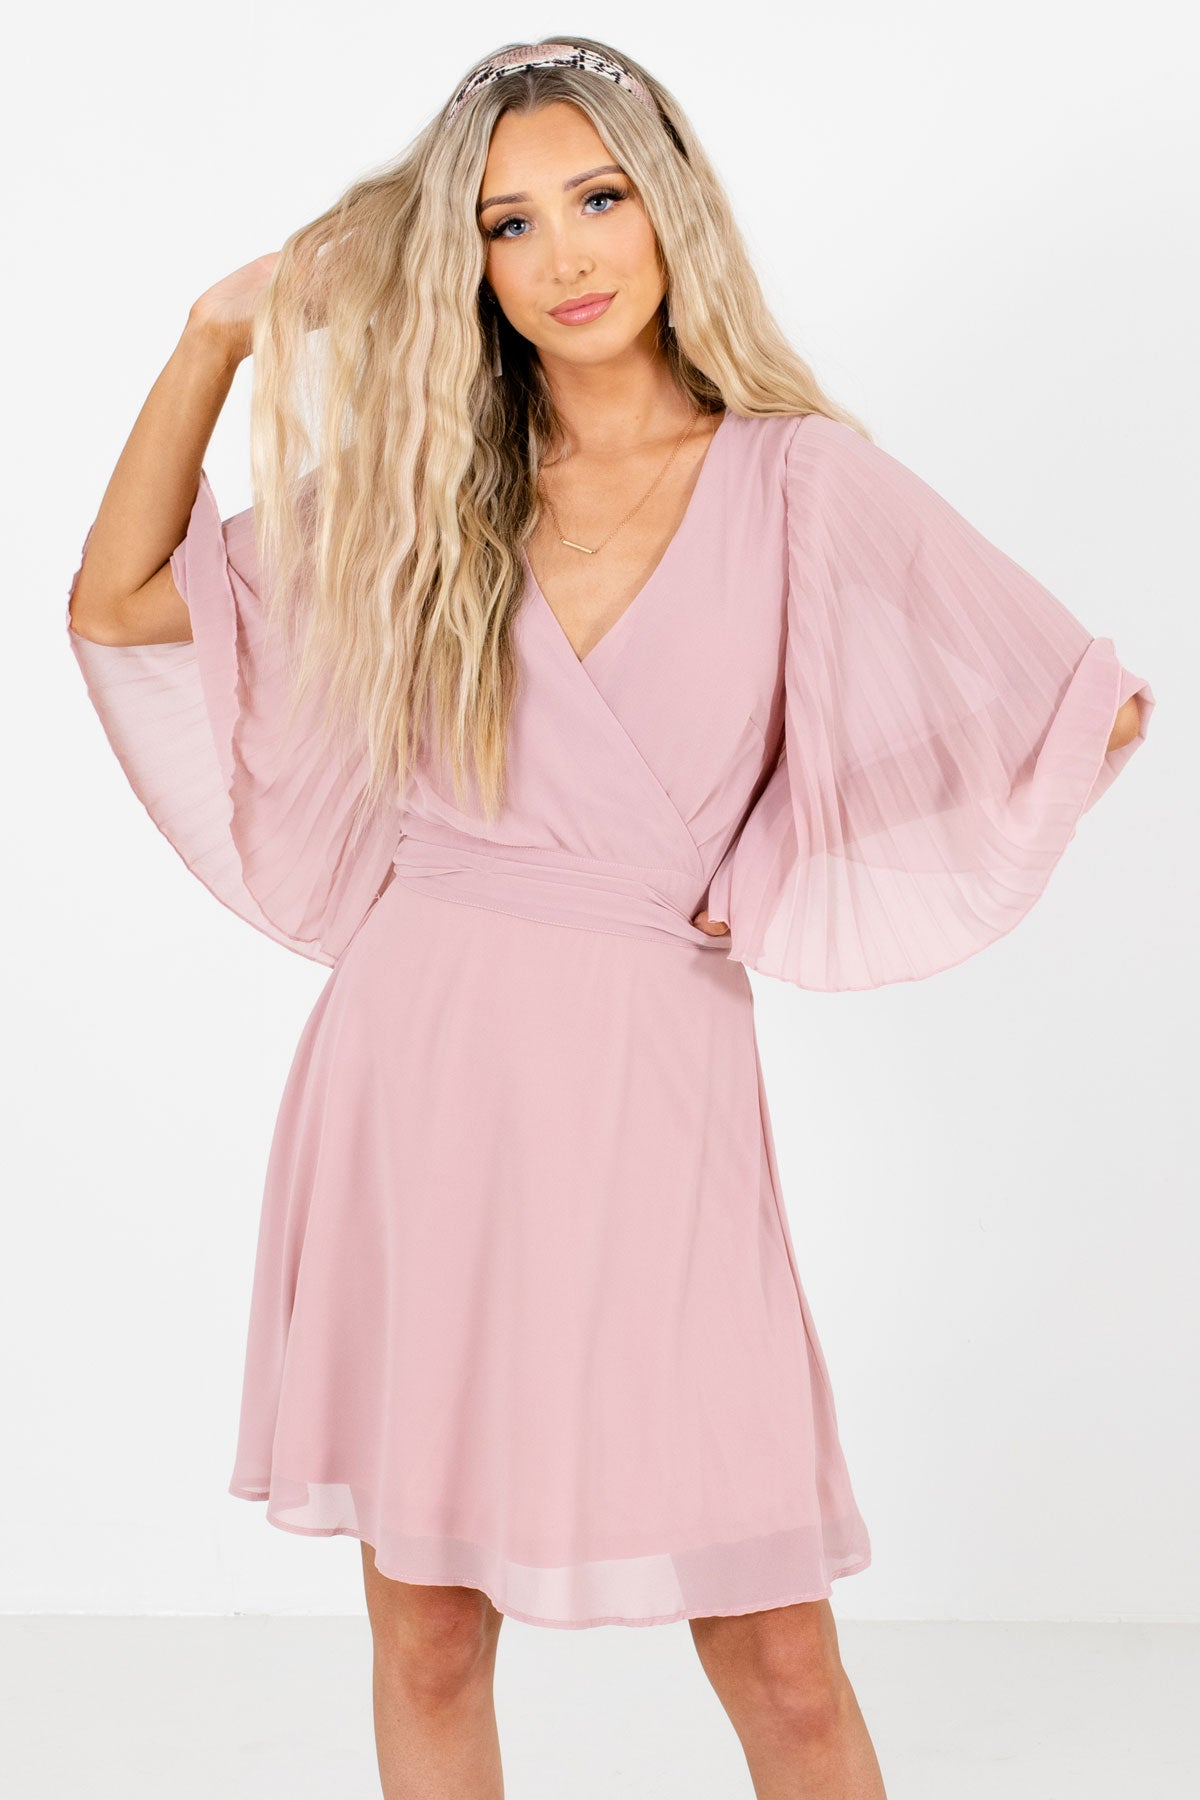 Light Pink Mini Length Boutique Dresses for Women